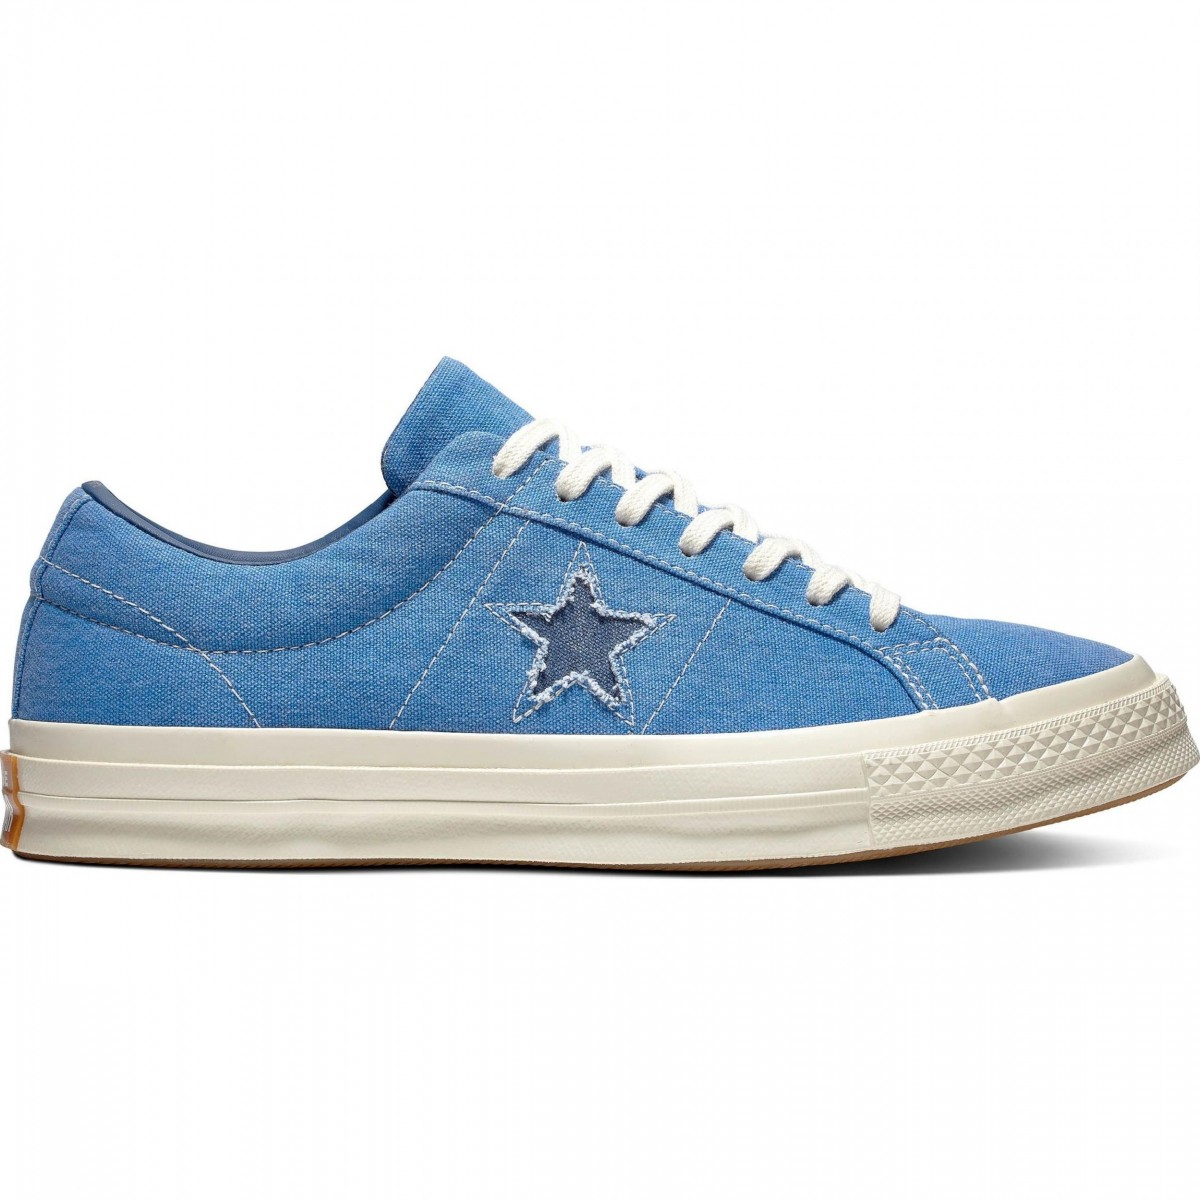 Converse One Star Sunbaked Sneaker